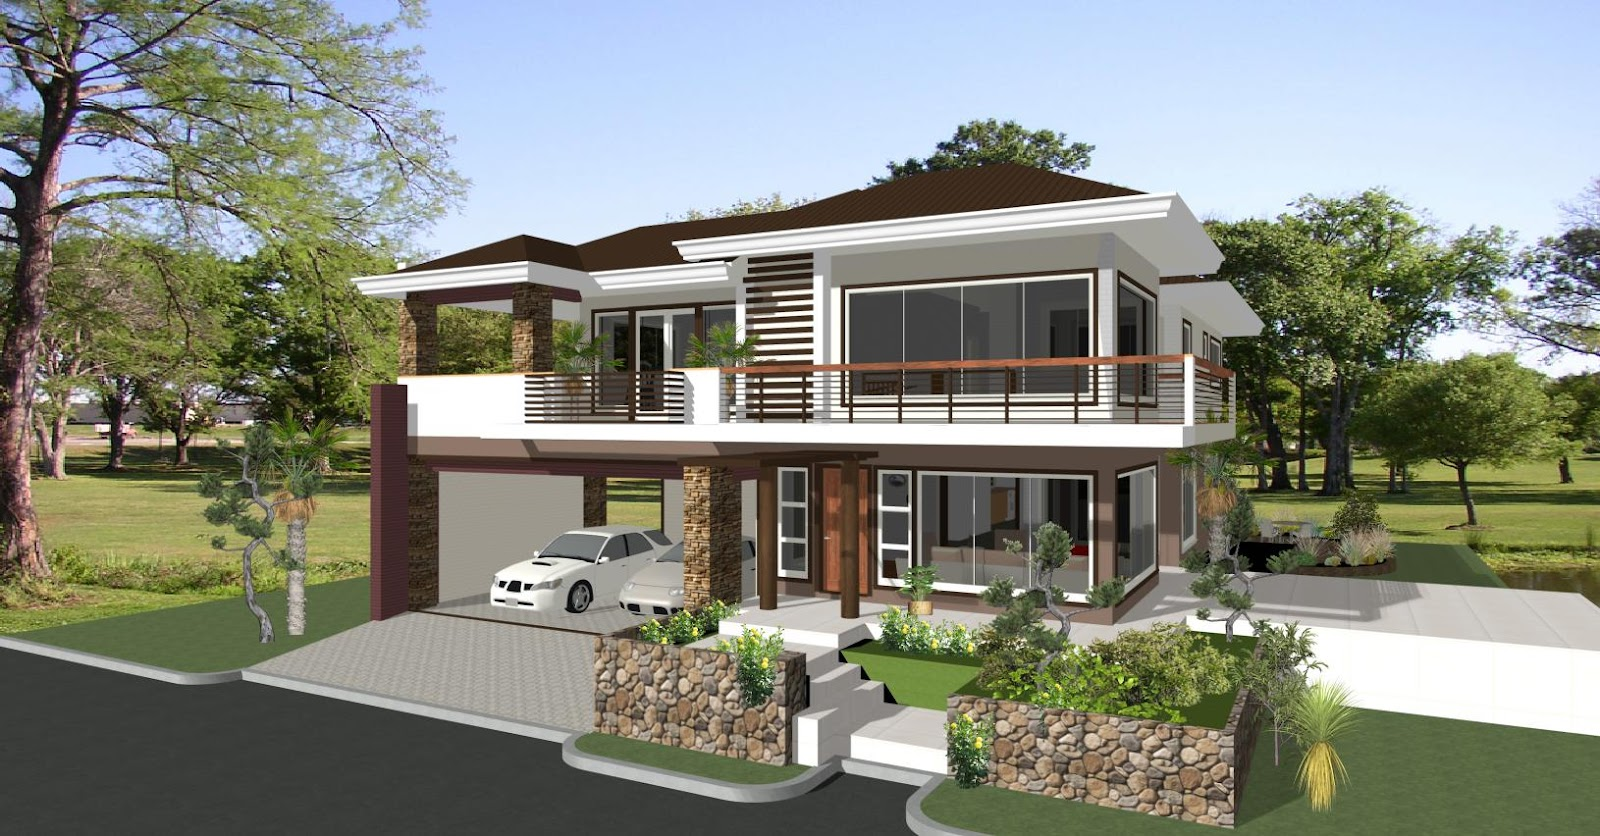 Wonderful House Designs In The Philippines In Iloilo By Erecre Group Realty